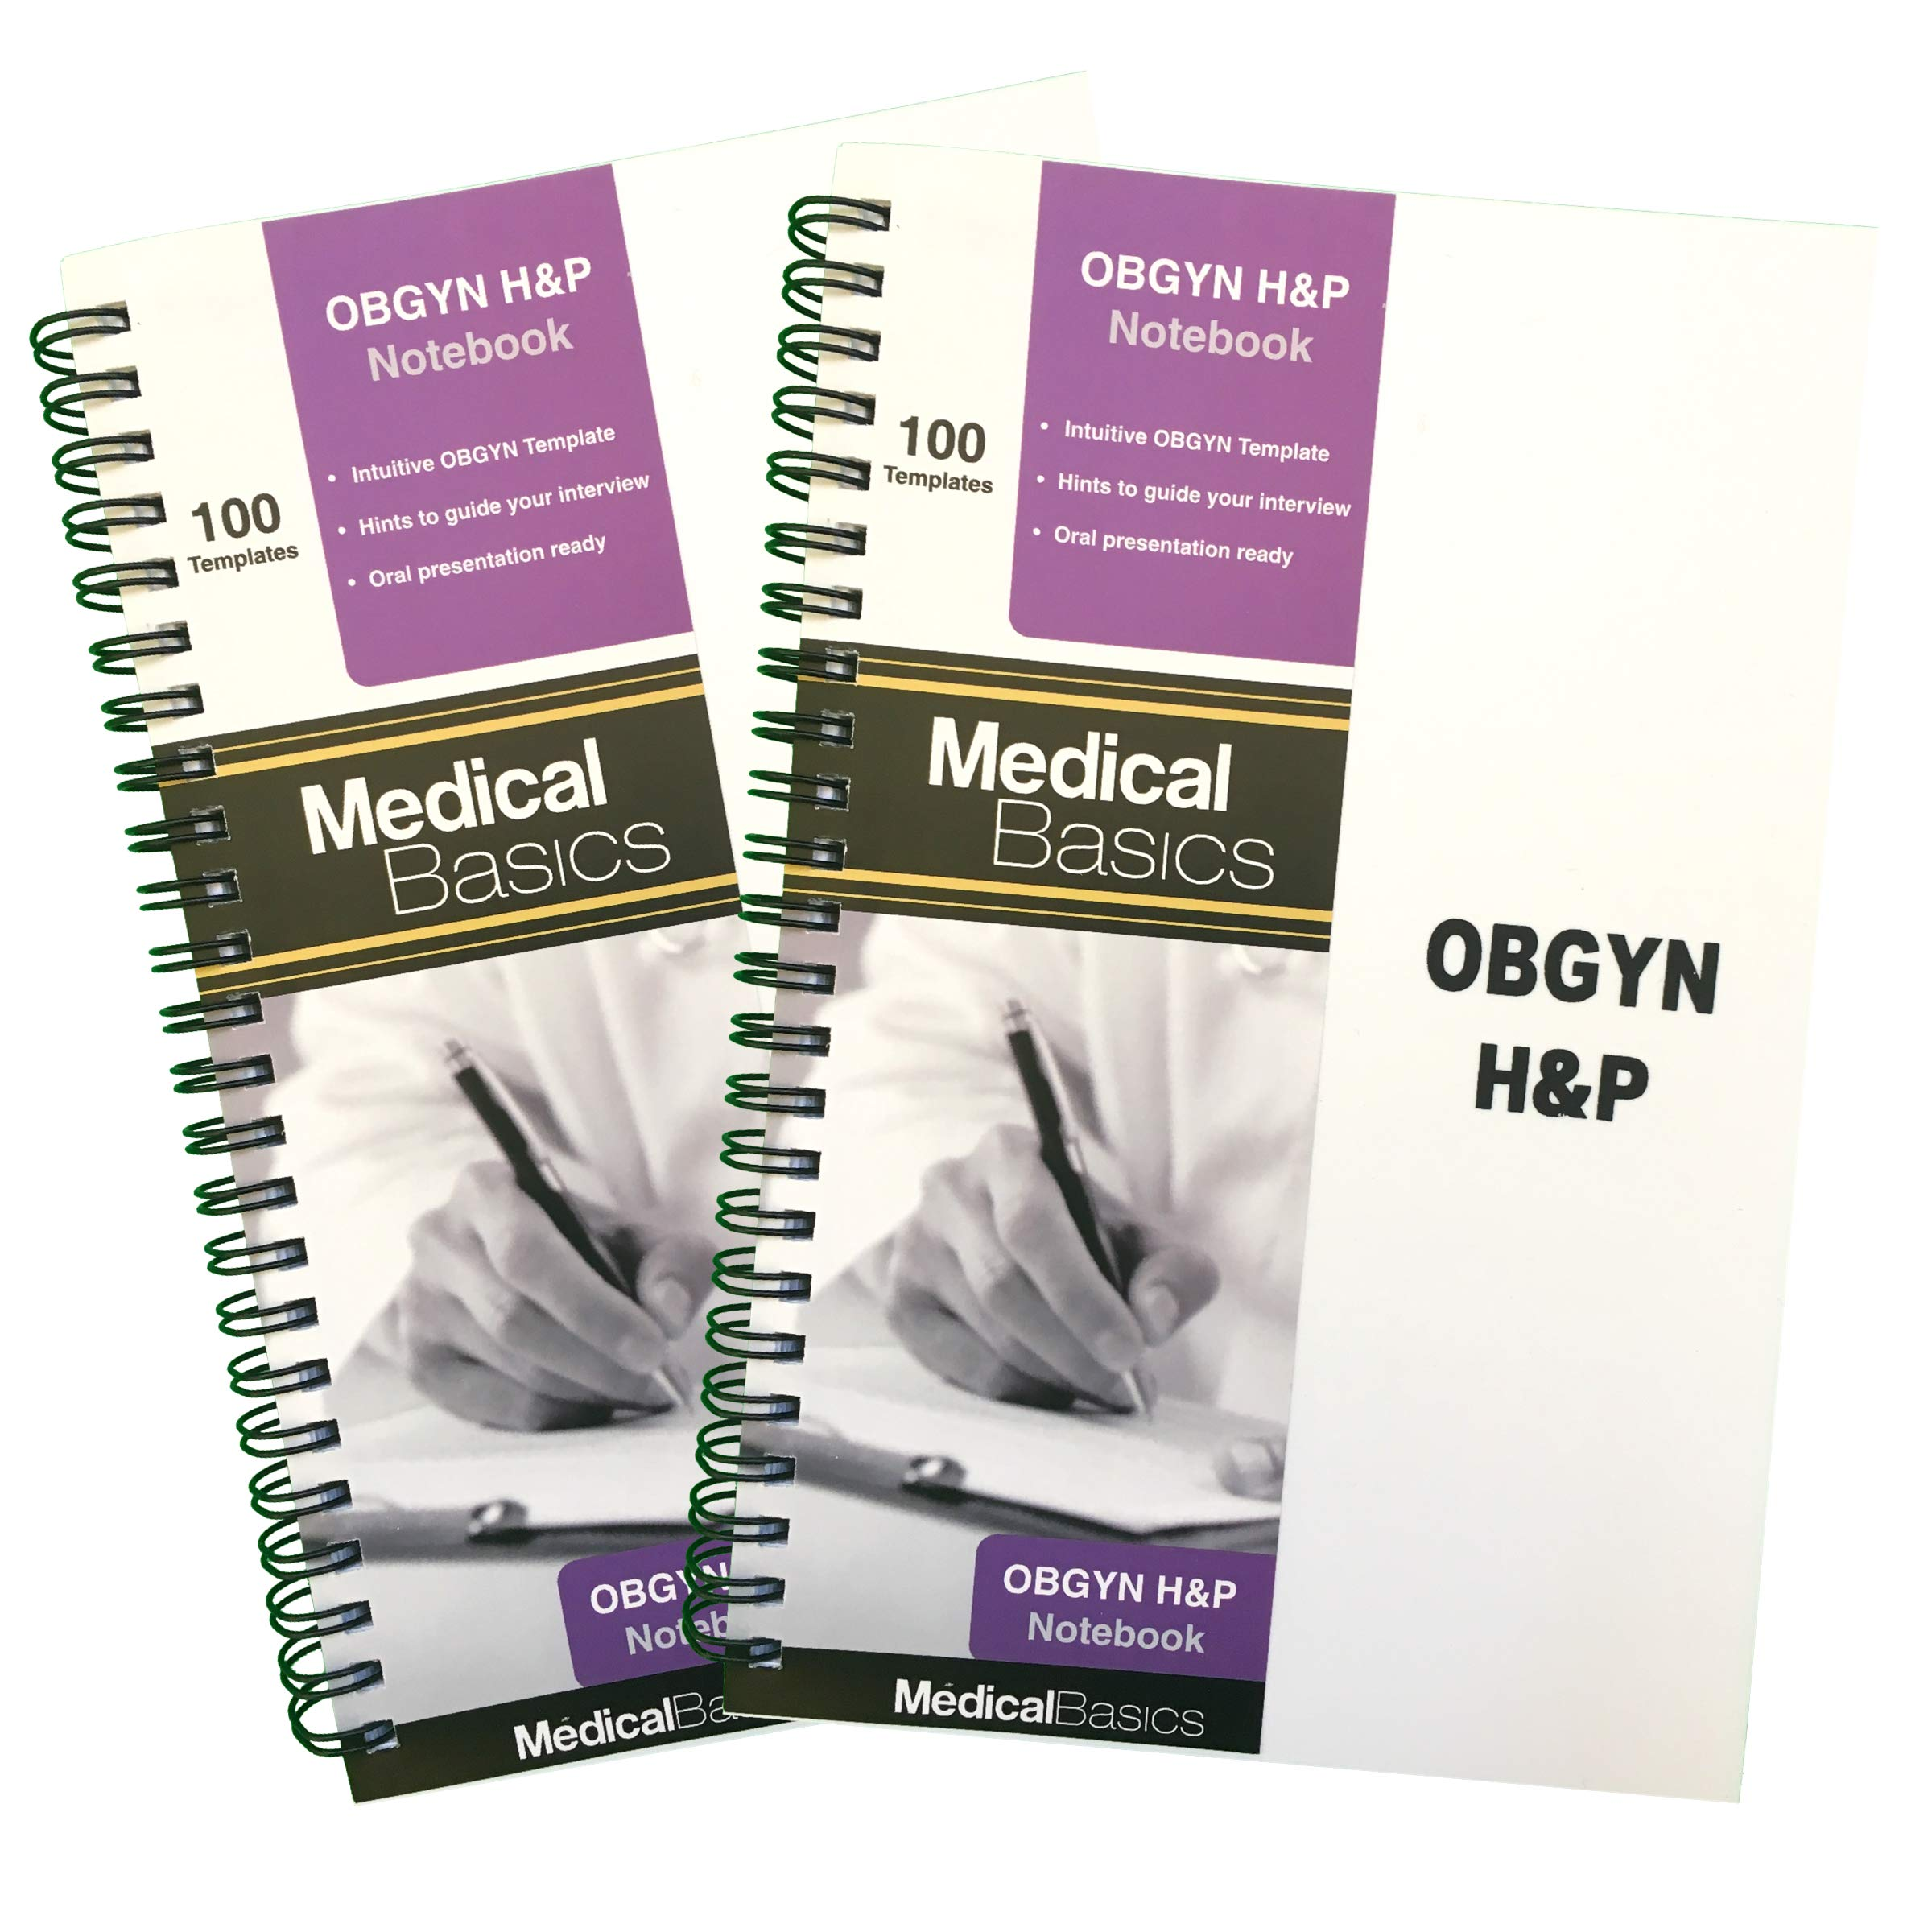 OBGYN H&P Notebook Medical History and Physical Notebook, 100 Medical templates with Perforations